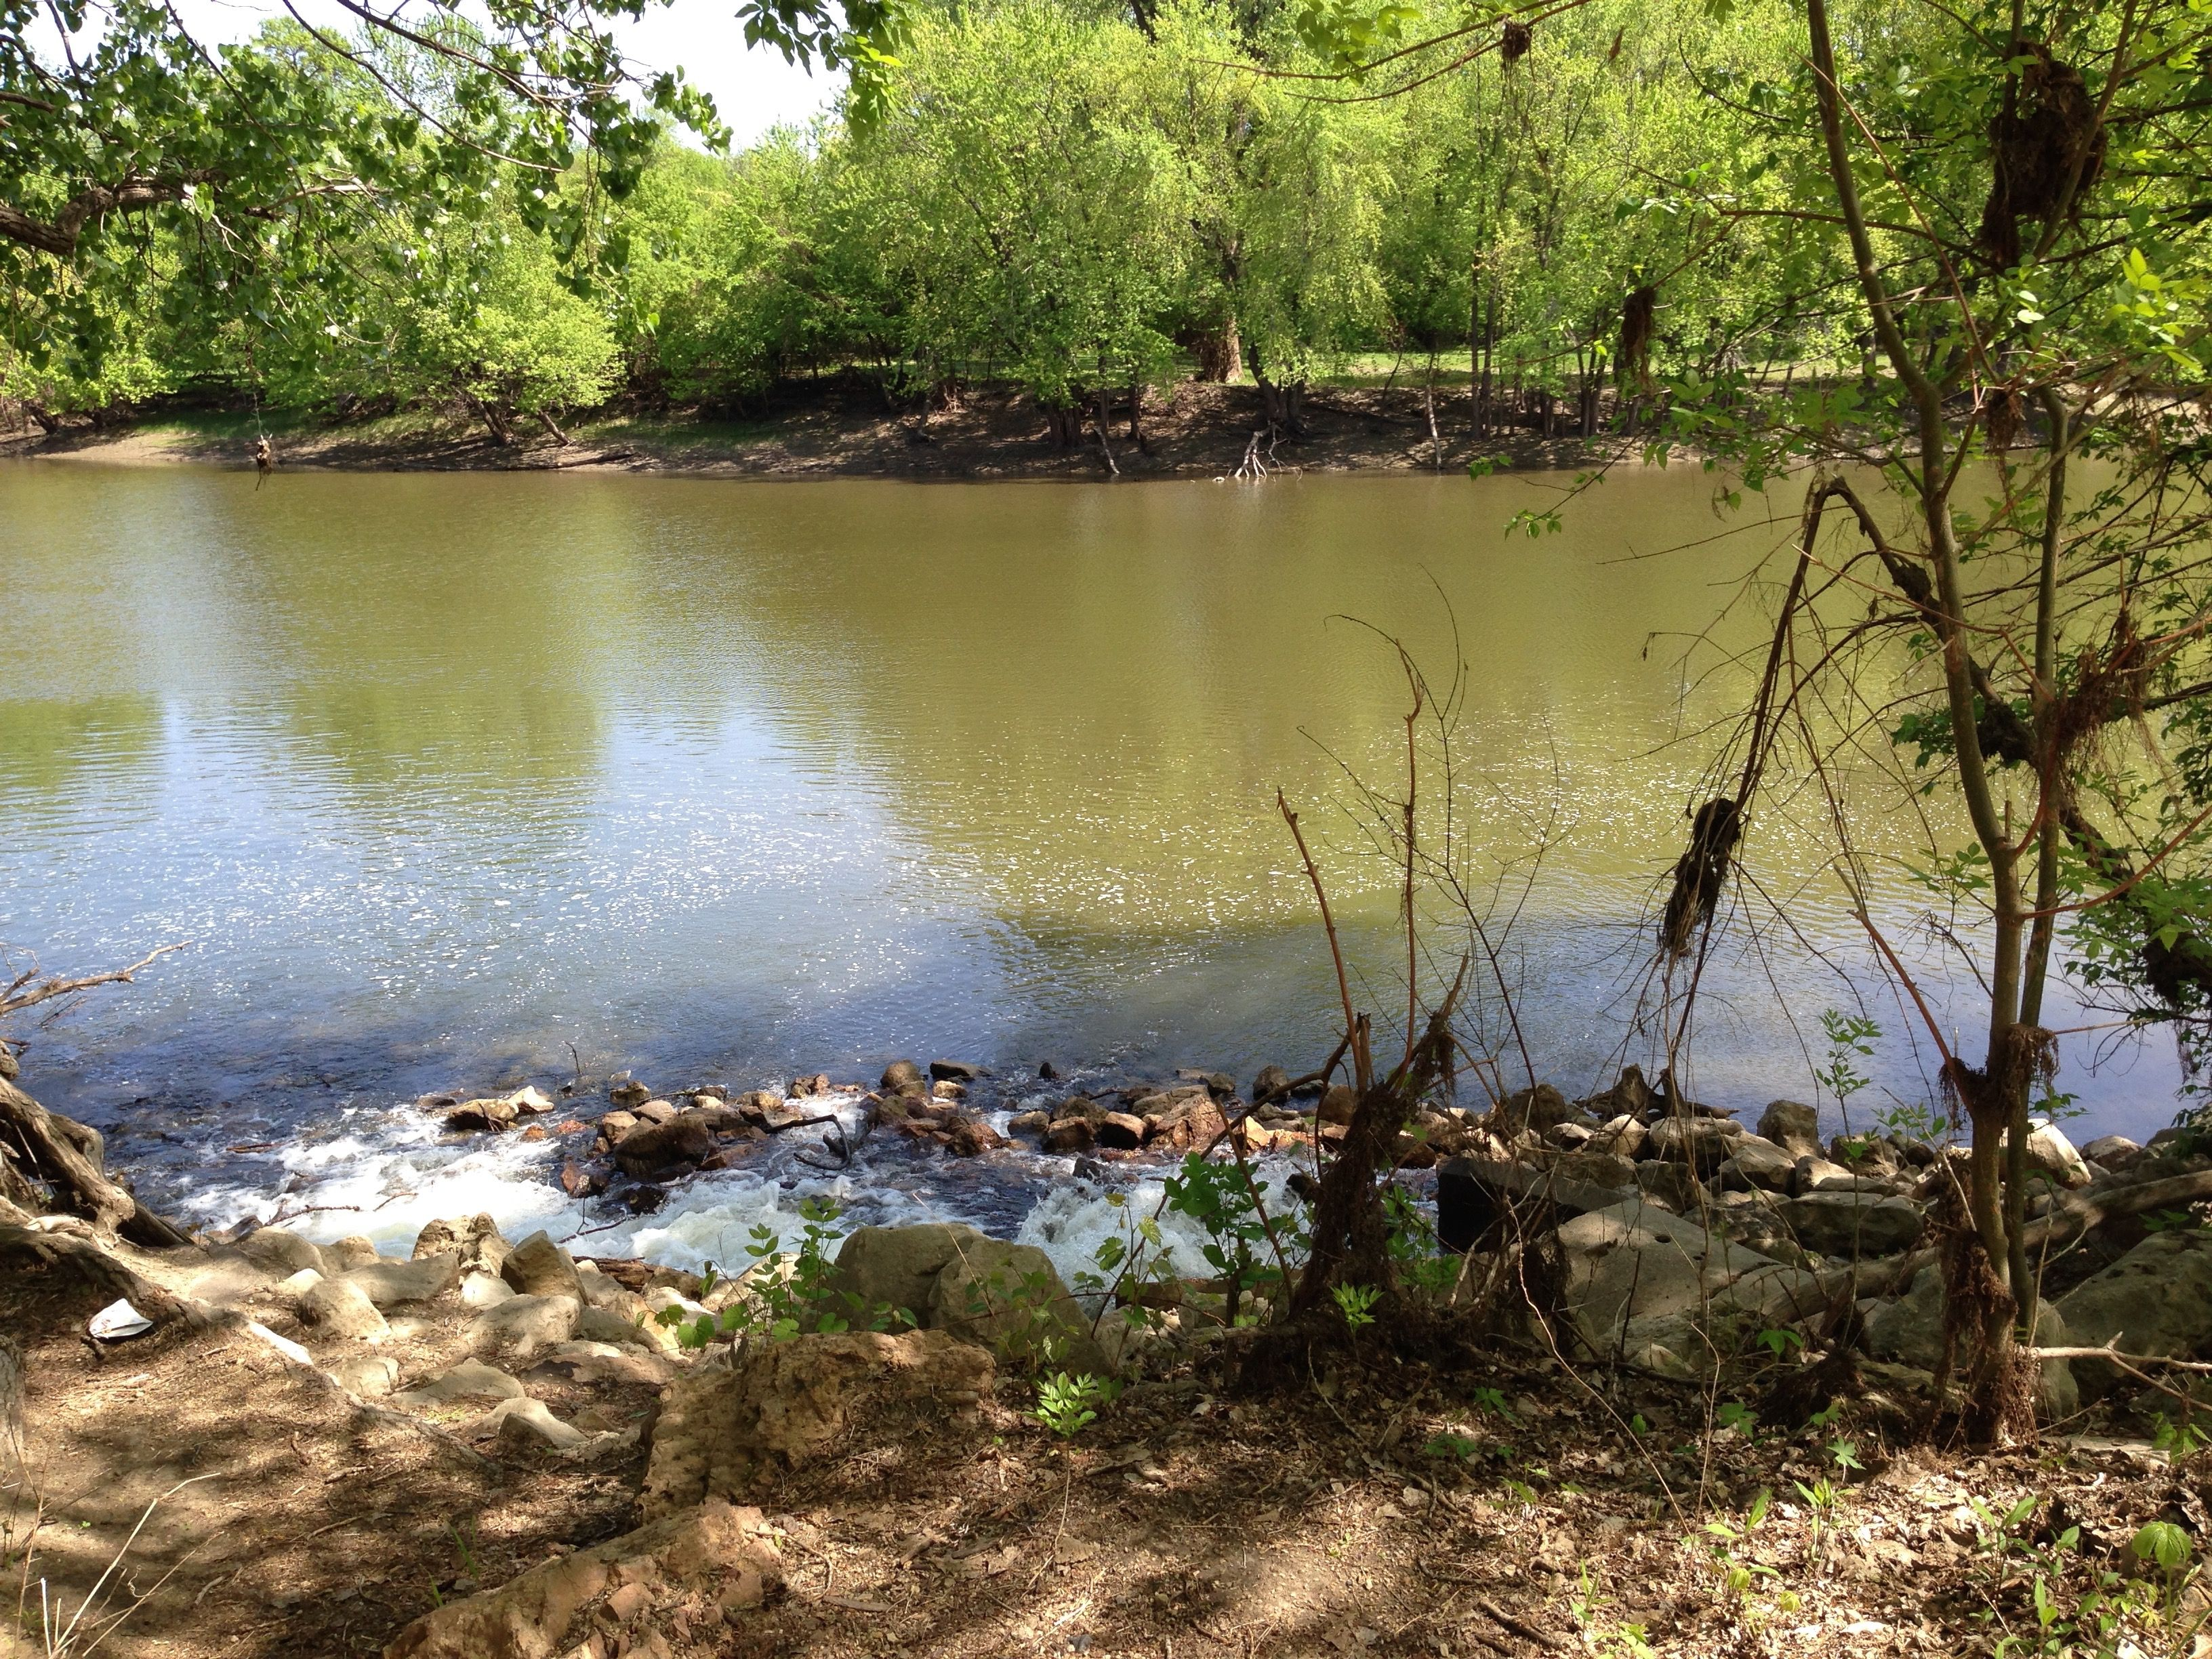 Fort Snelling hiking trail by the Minnesota River - beautiful to see and experience.